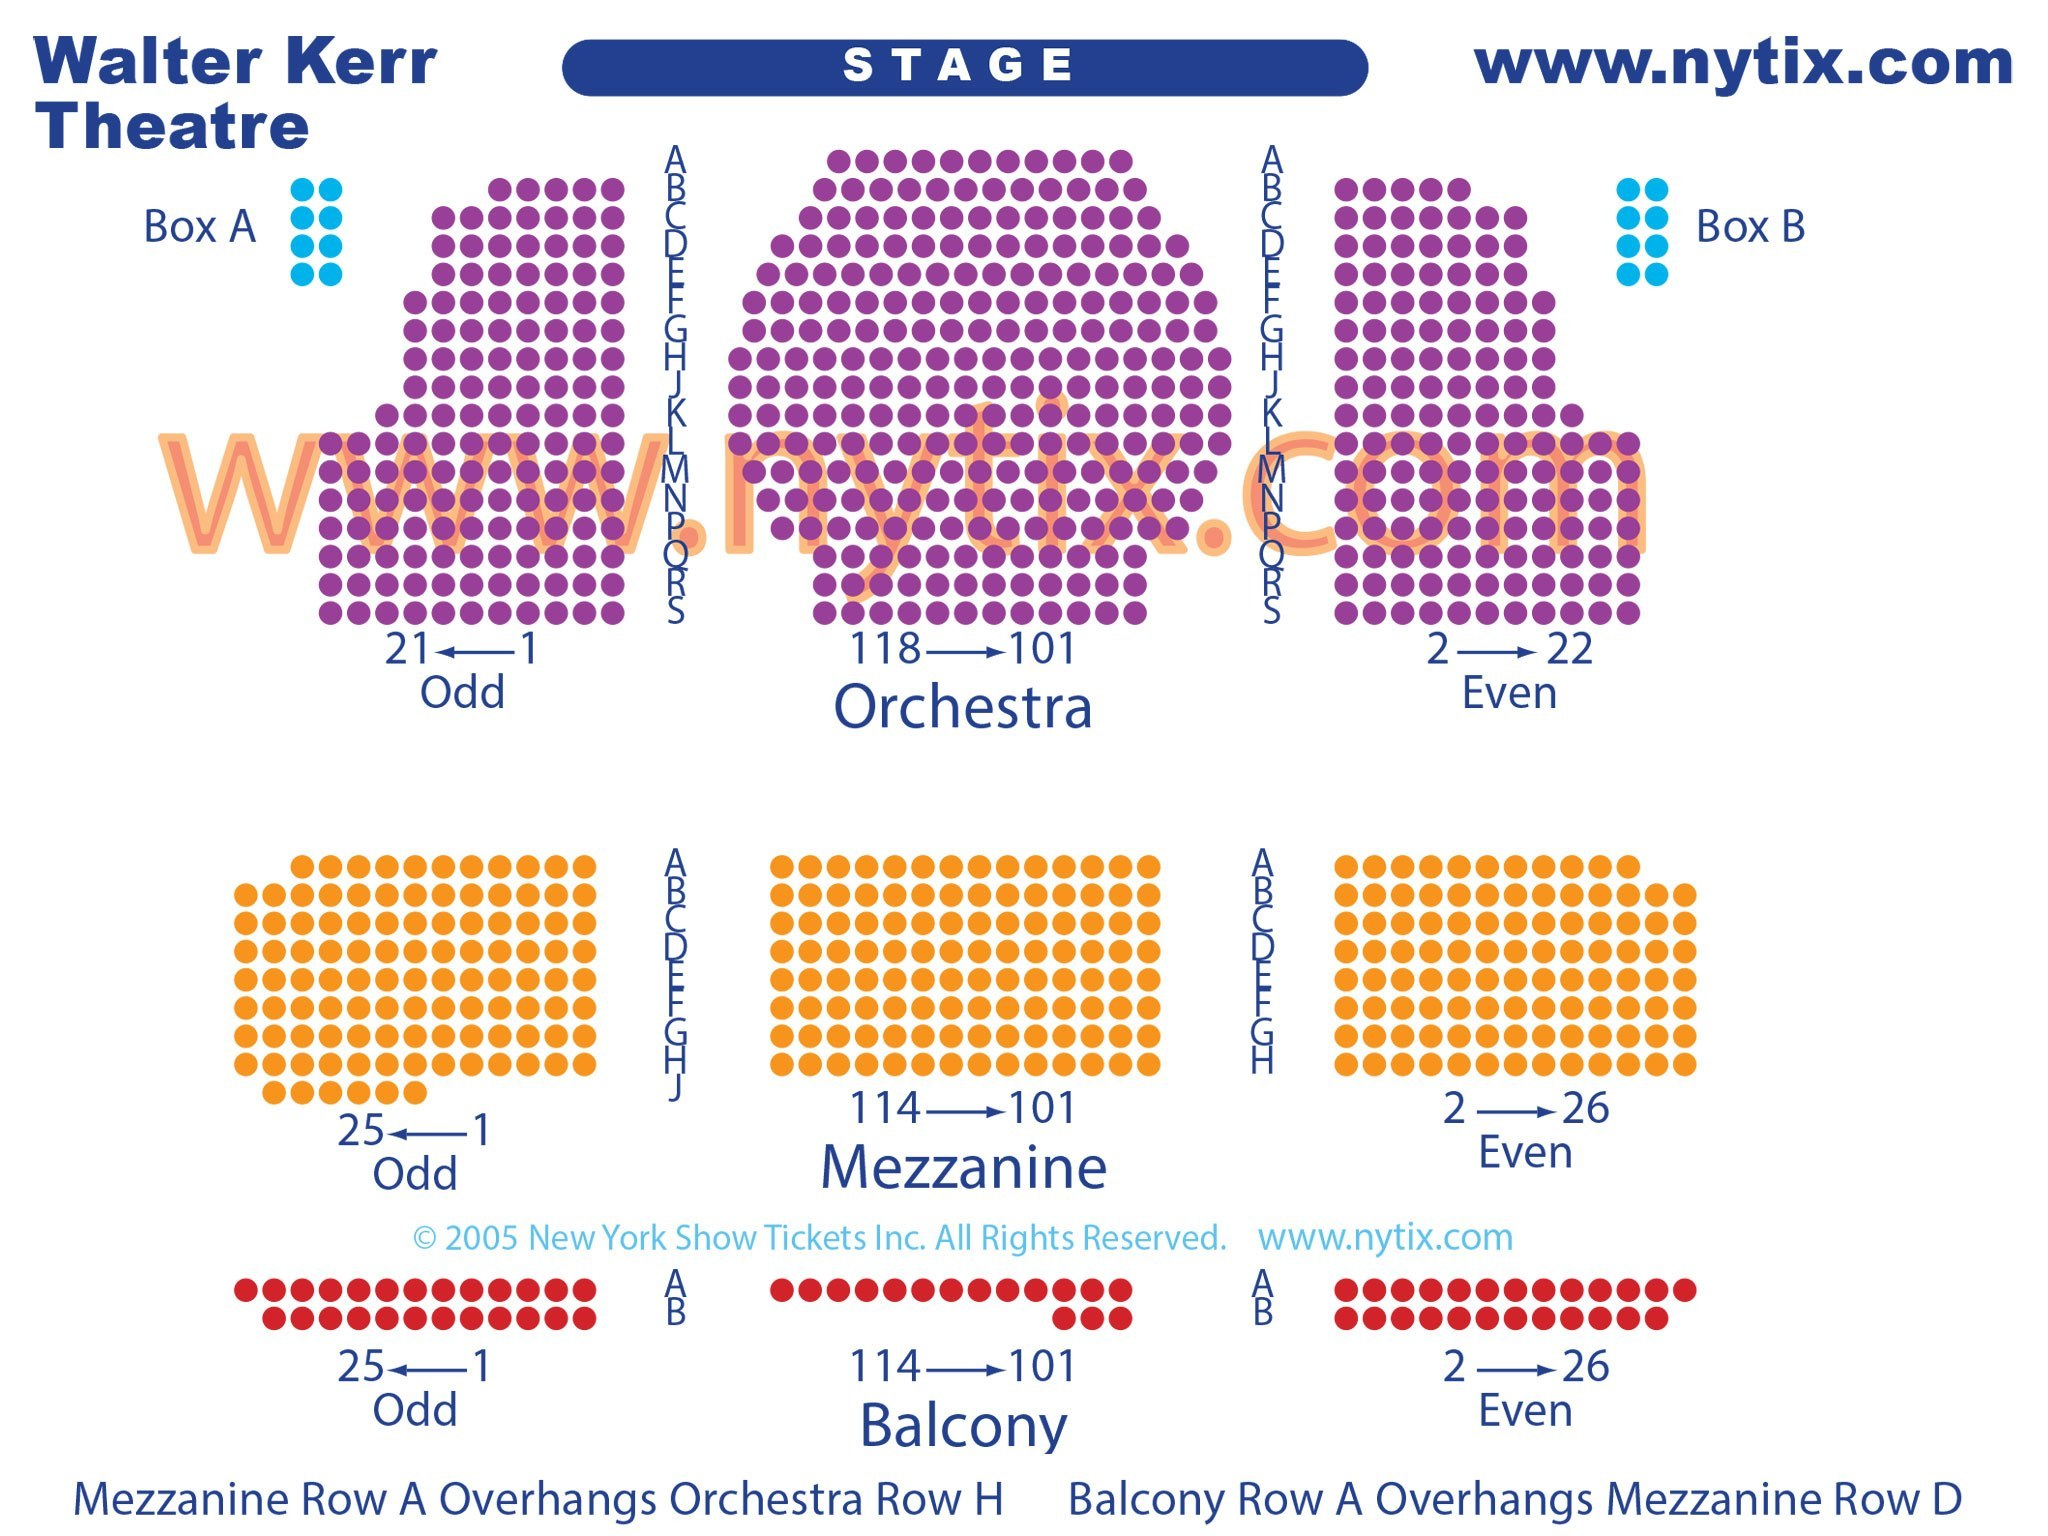 Walter Kerr Theatre Seating Chart